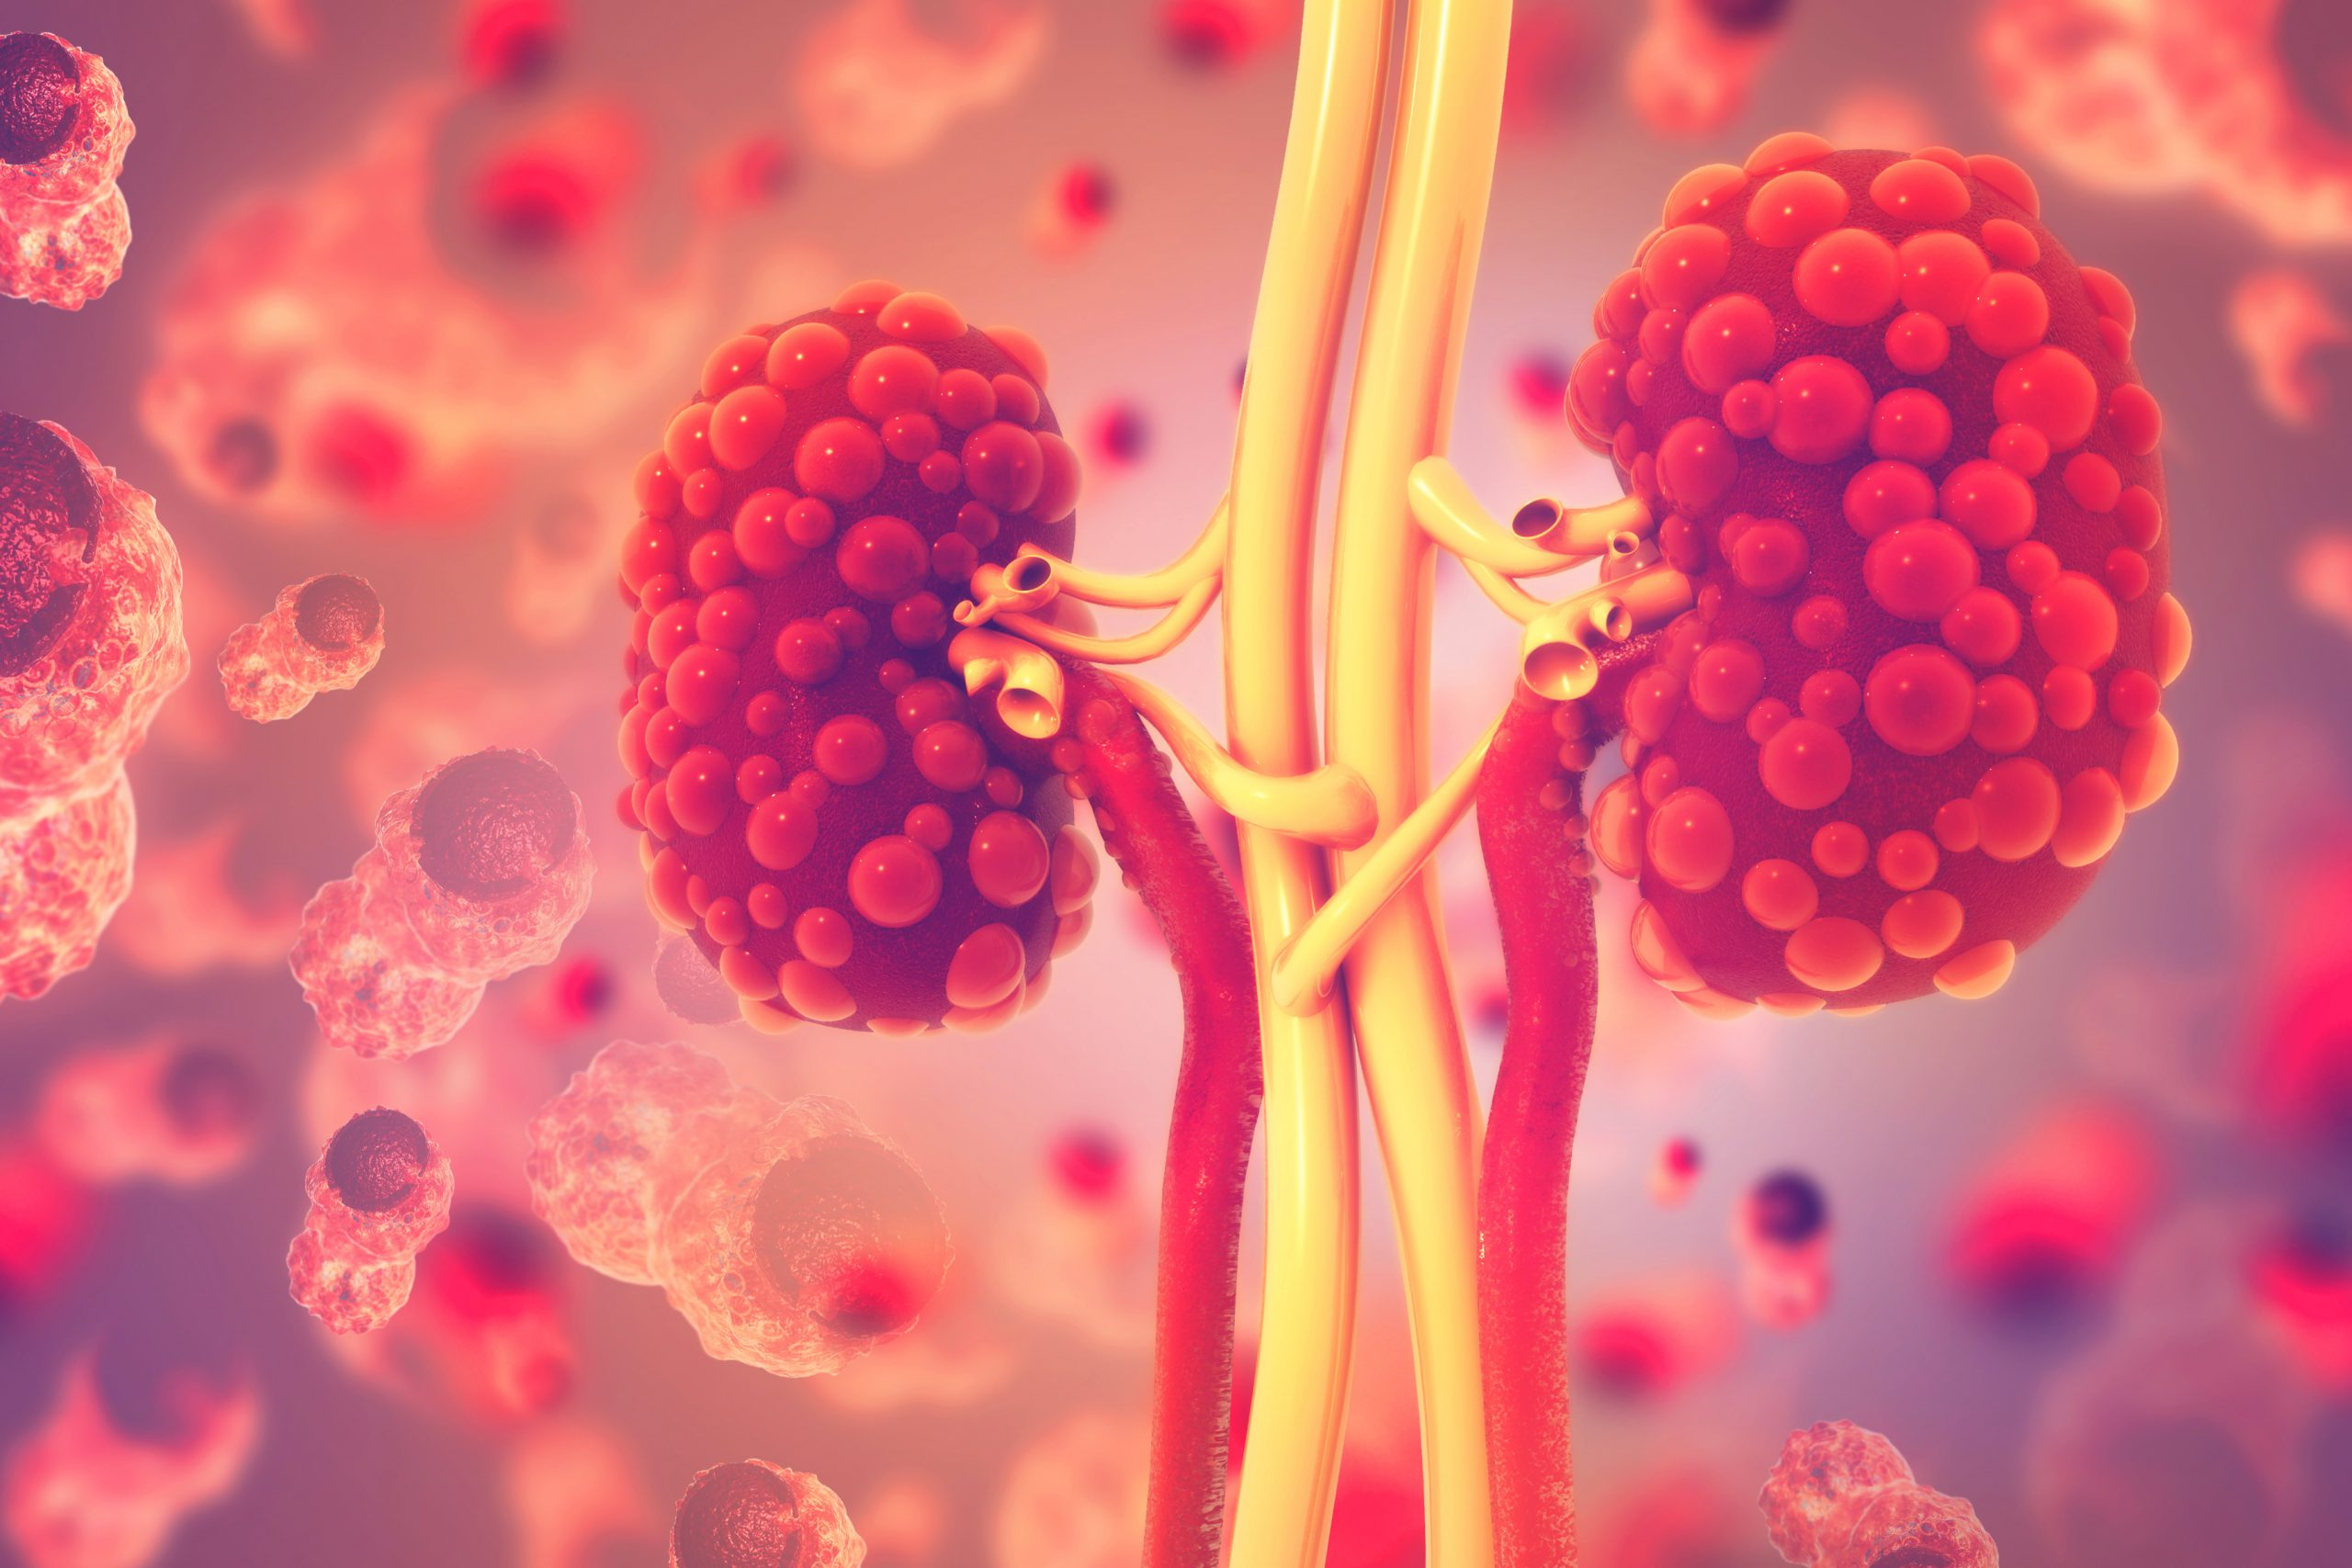 Kidneys carried the second-highest COVID-19 viral load